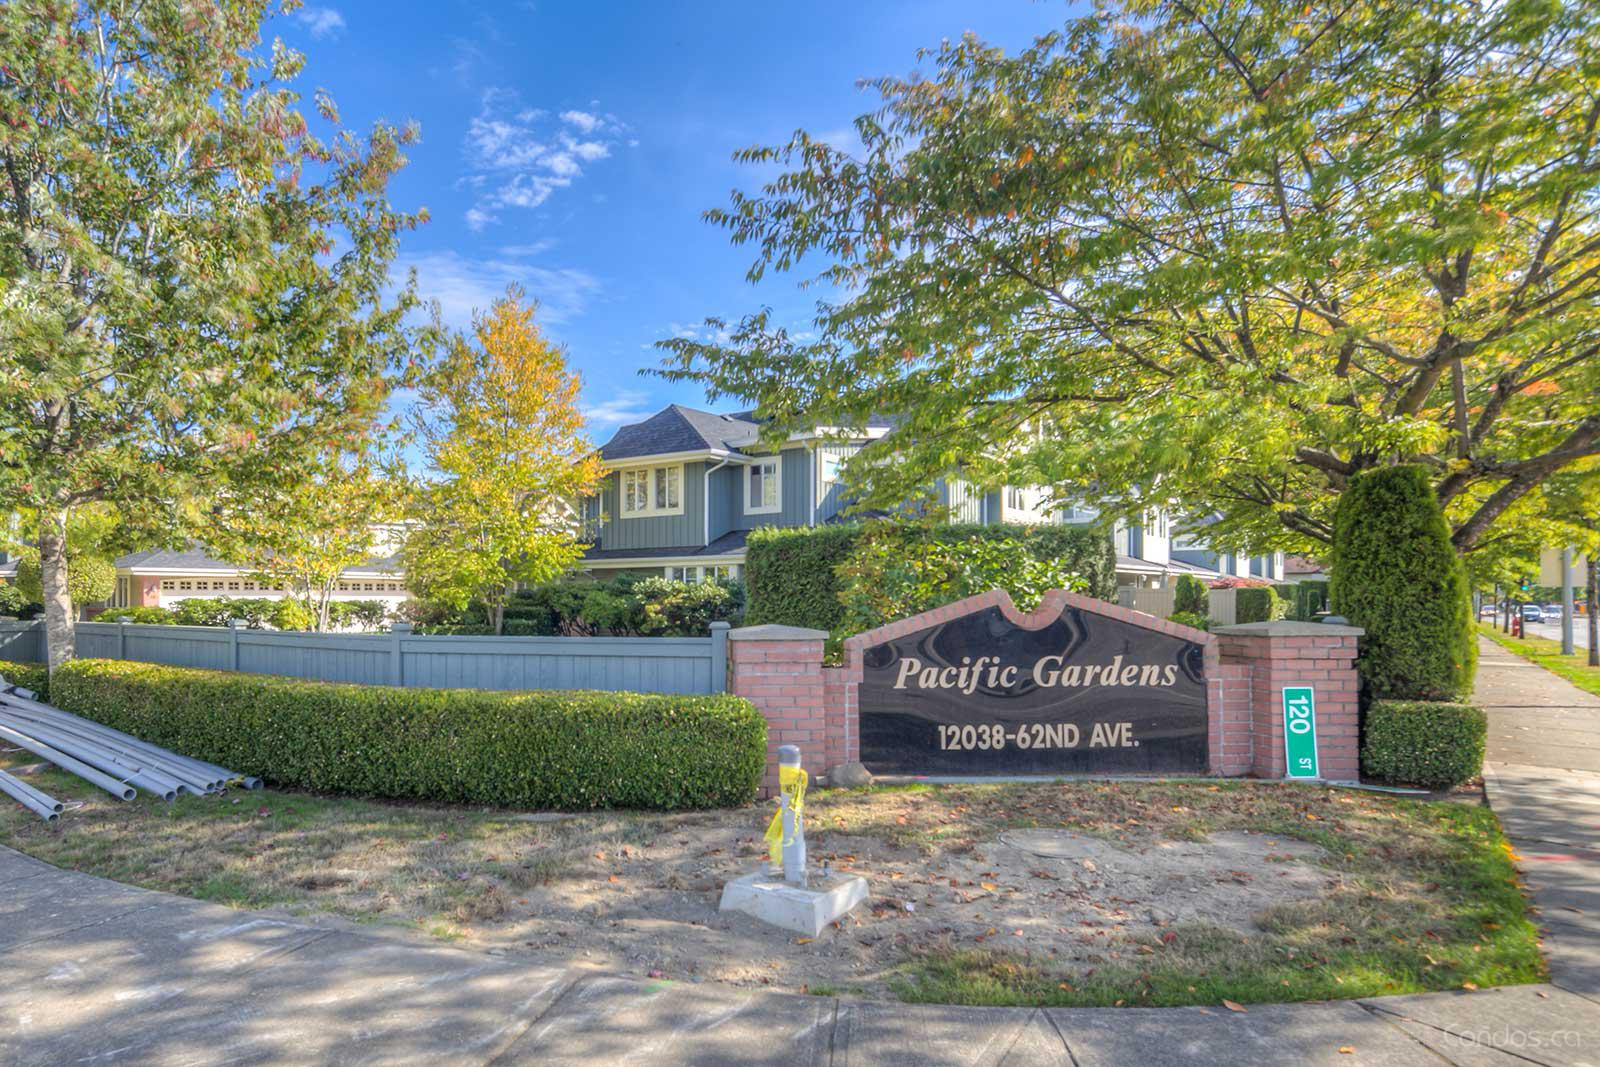 Pacific Gardens at 12038 62 Ave, Surrey 0